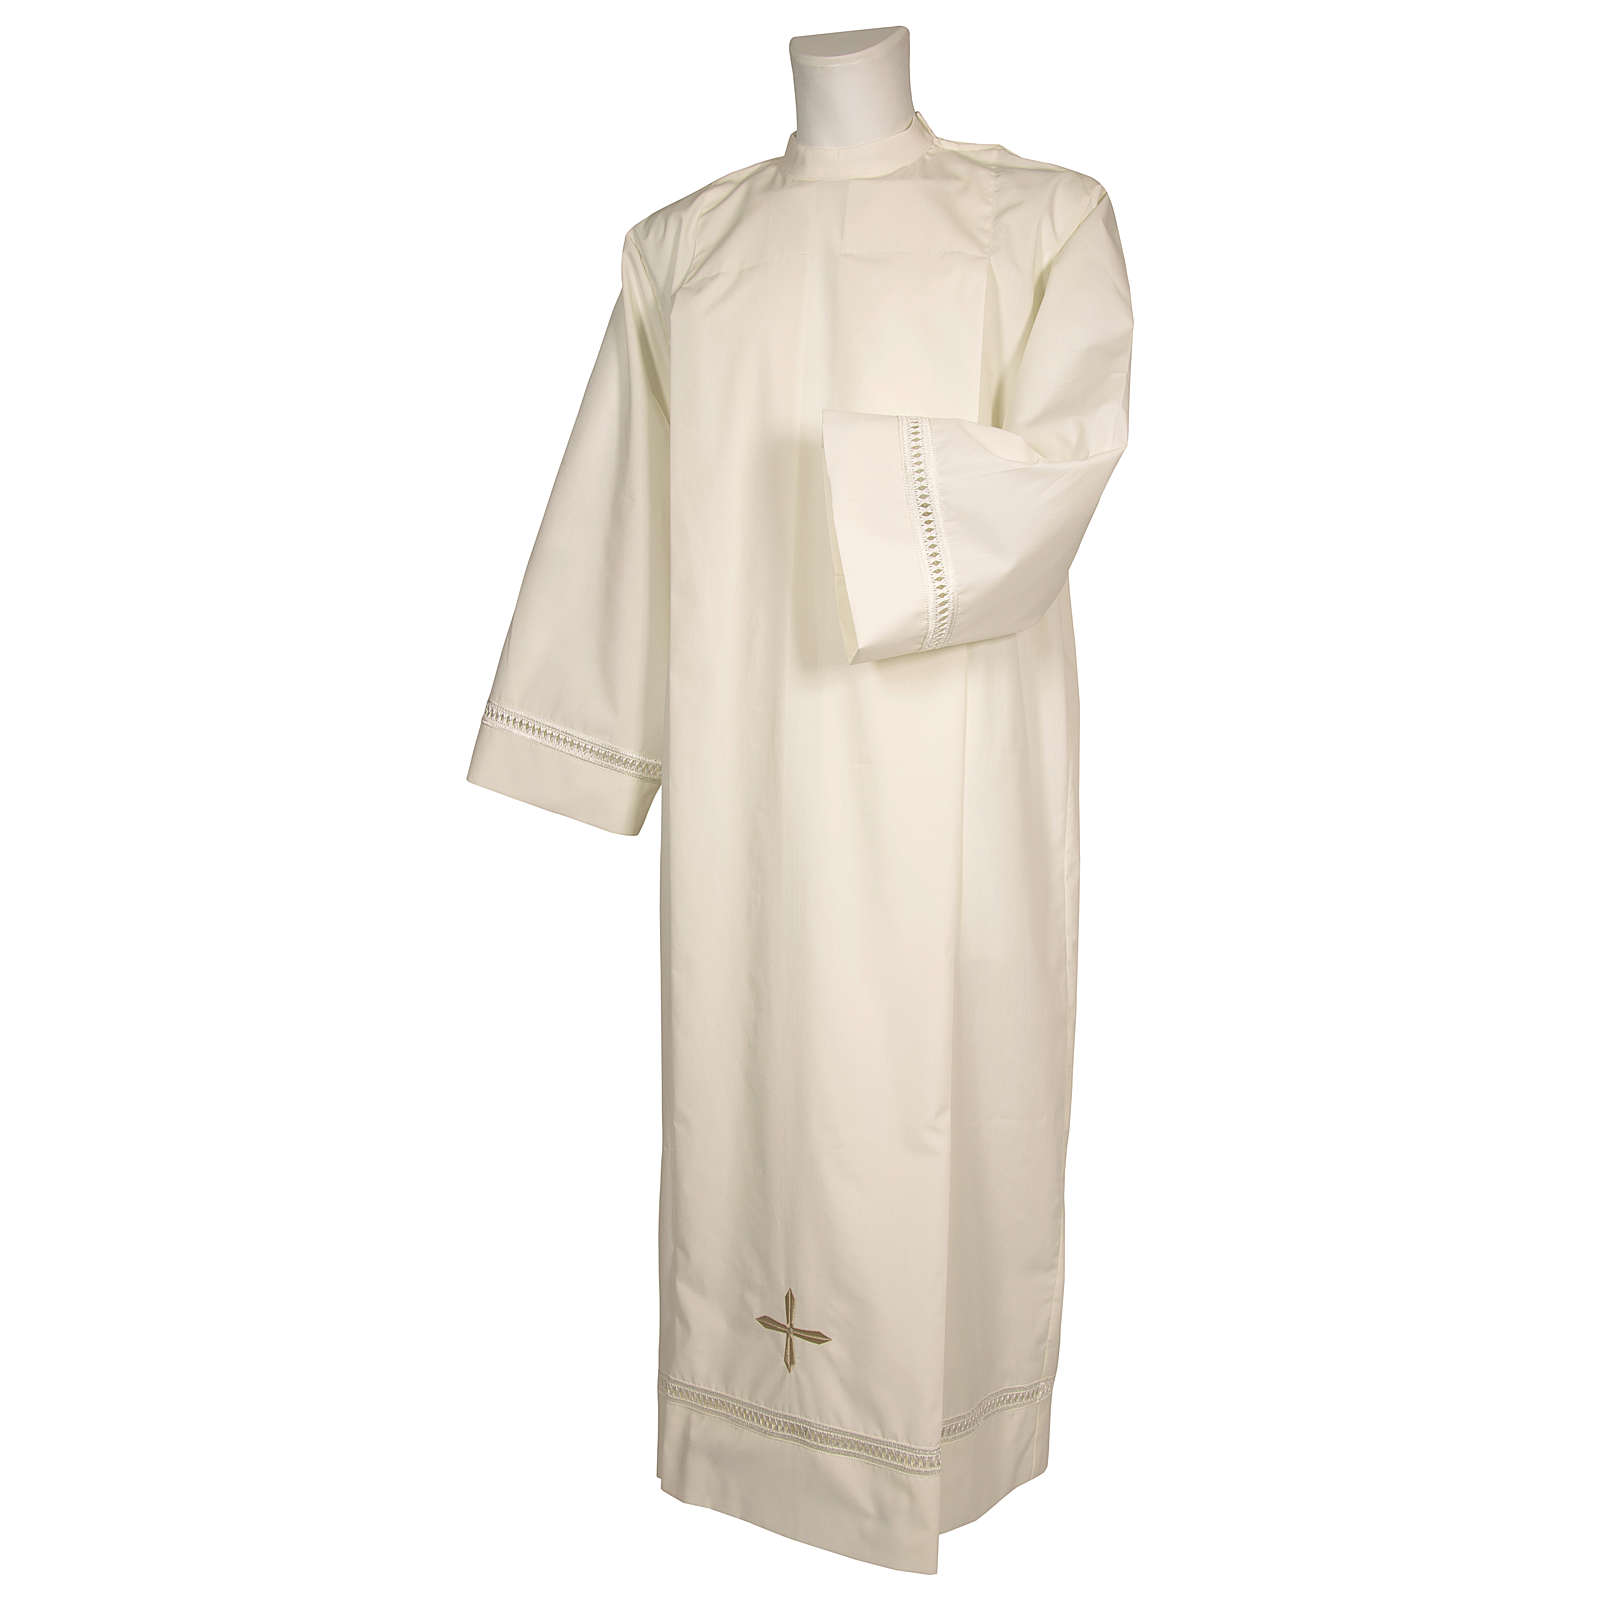 Deacon Alb in Ivory, polyester with shoulder zipper and gigliuccio hemstitch 4